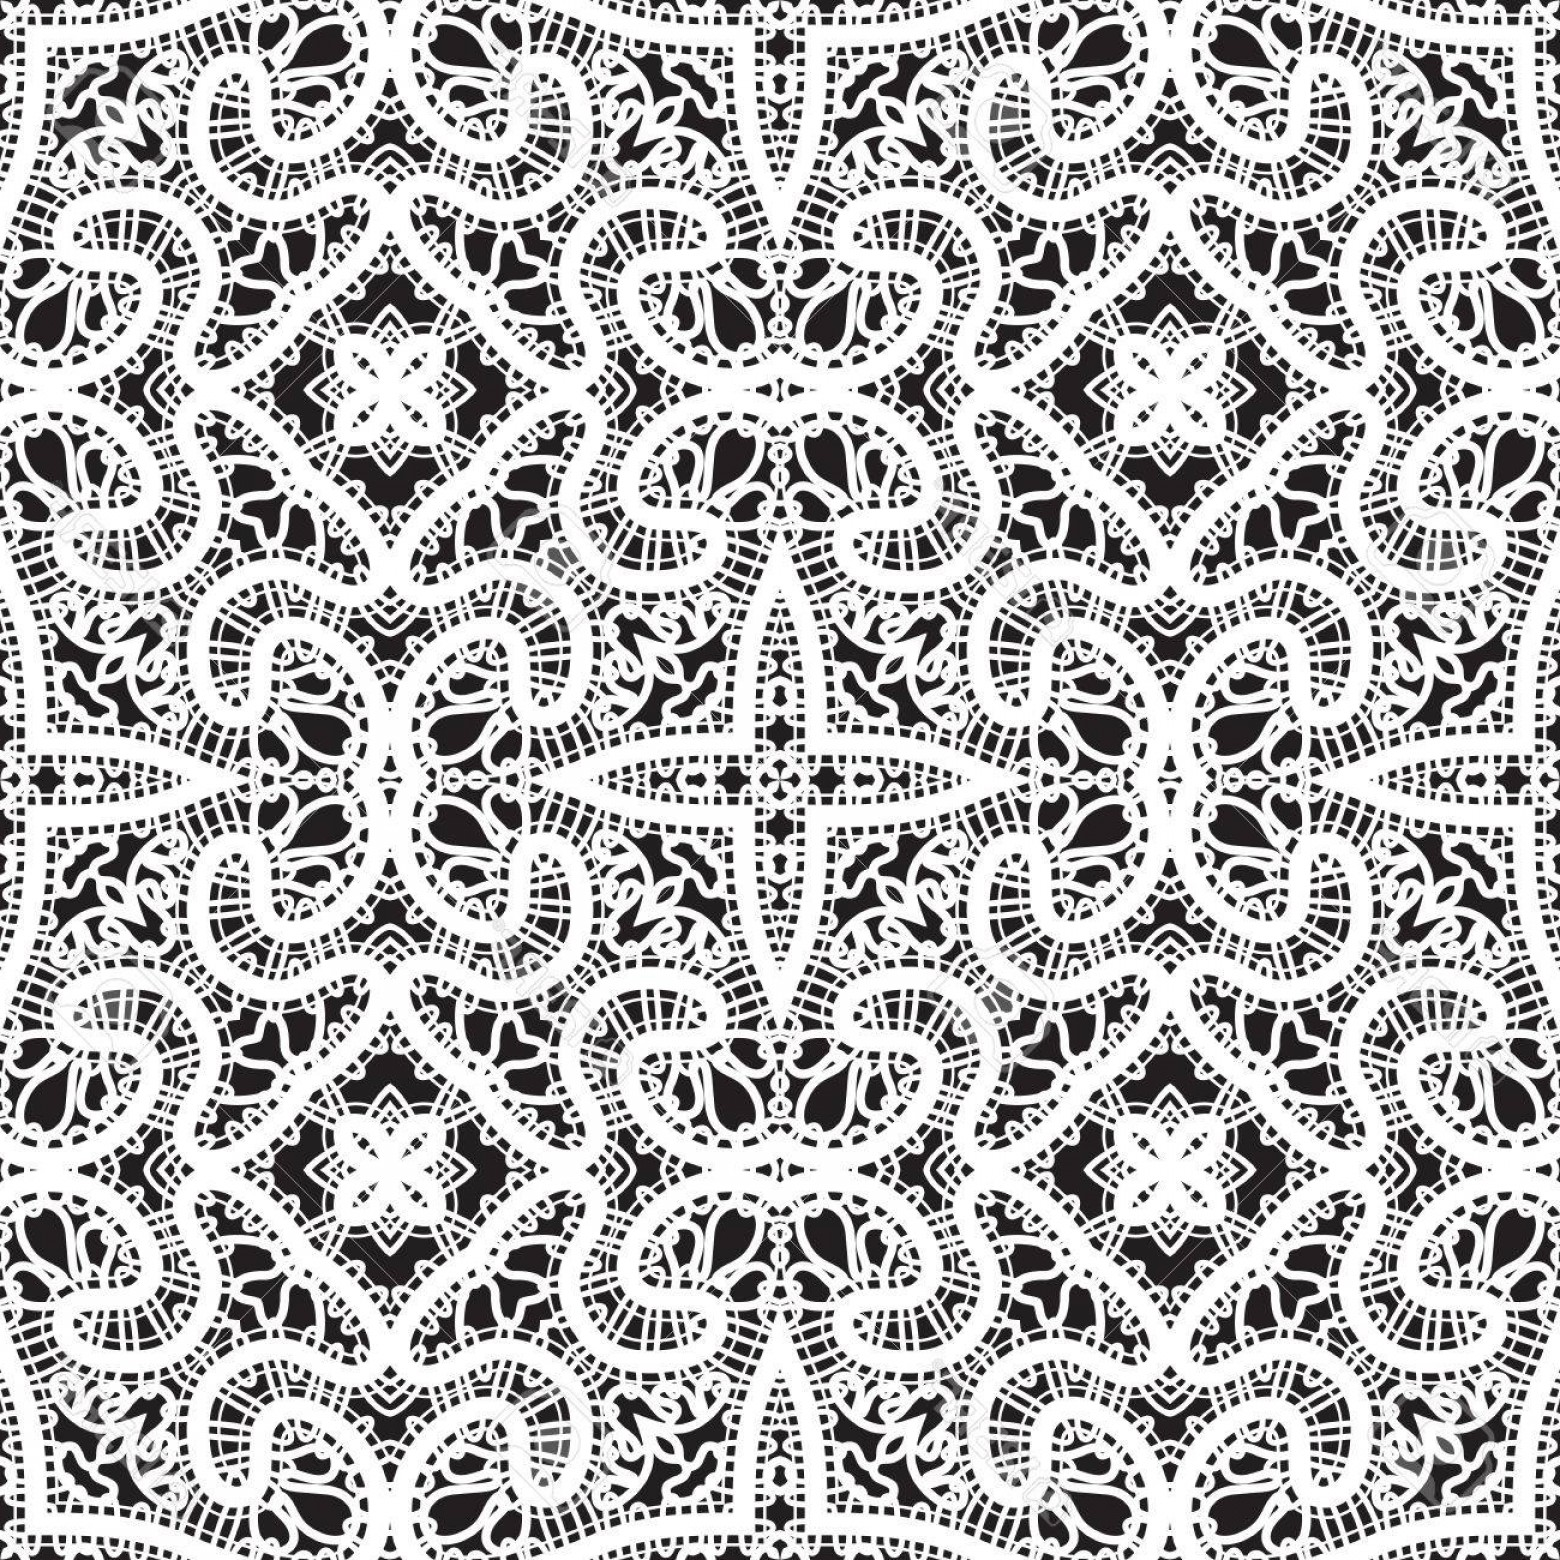 Tulle Black Lace Pattern Vector: Photostock Vector Black And White Tulle Ornament Handmade Tatting Lace Texture Seamless Pattern